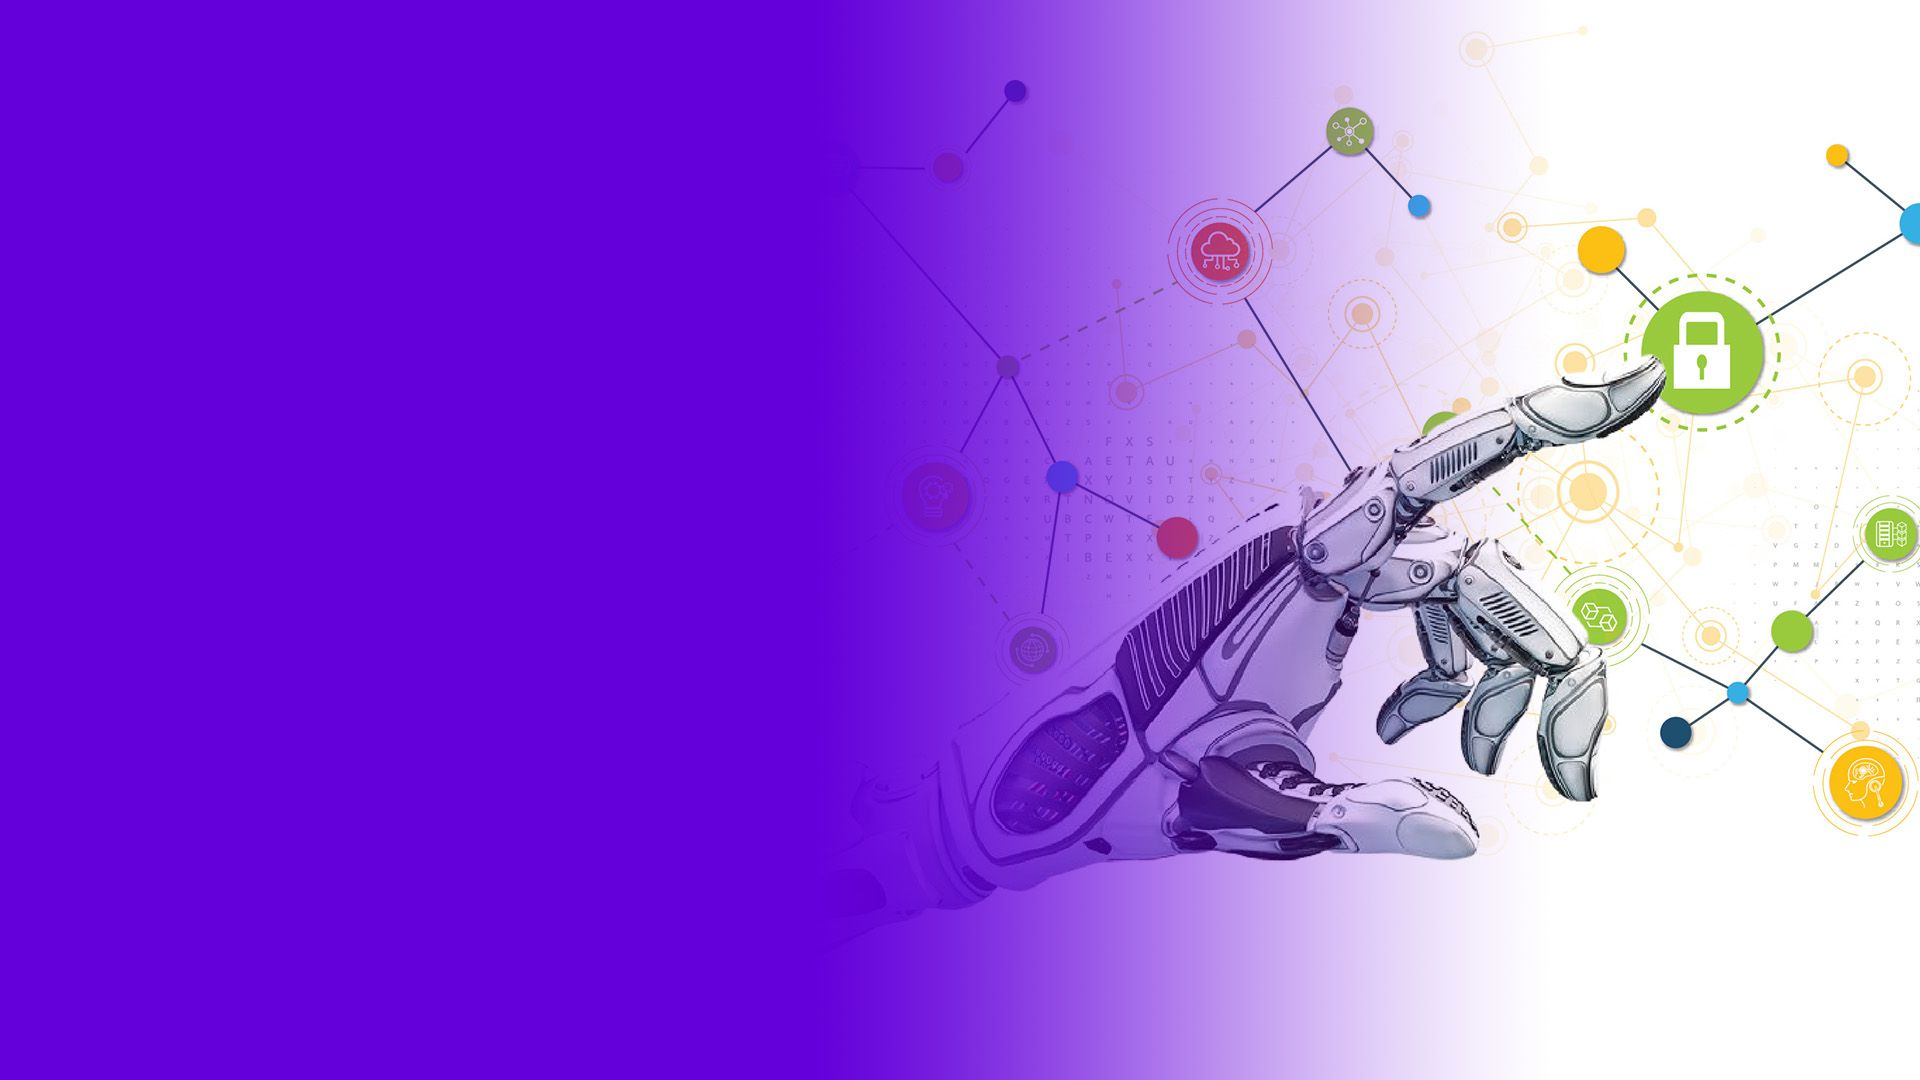 Unstructured data - Transform Content to Actionable Data and Unlock New Business Opportunities Through AI